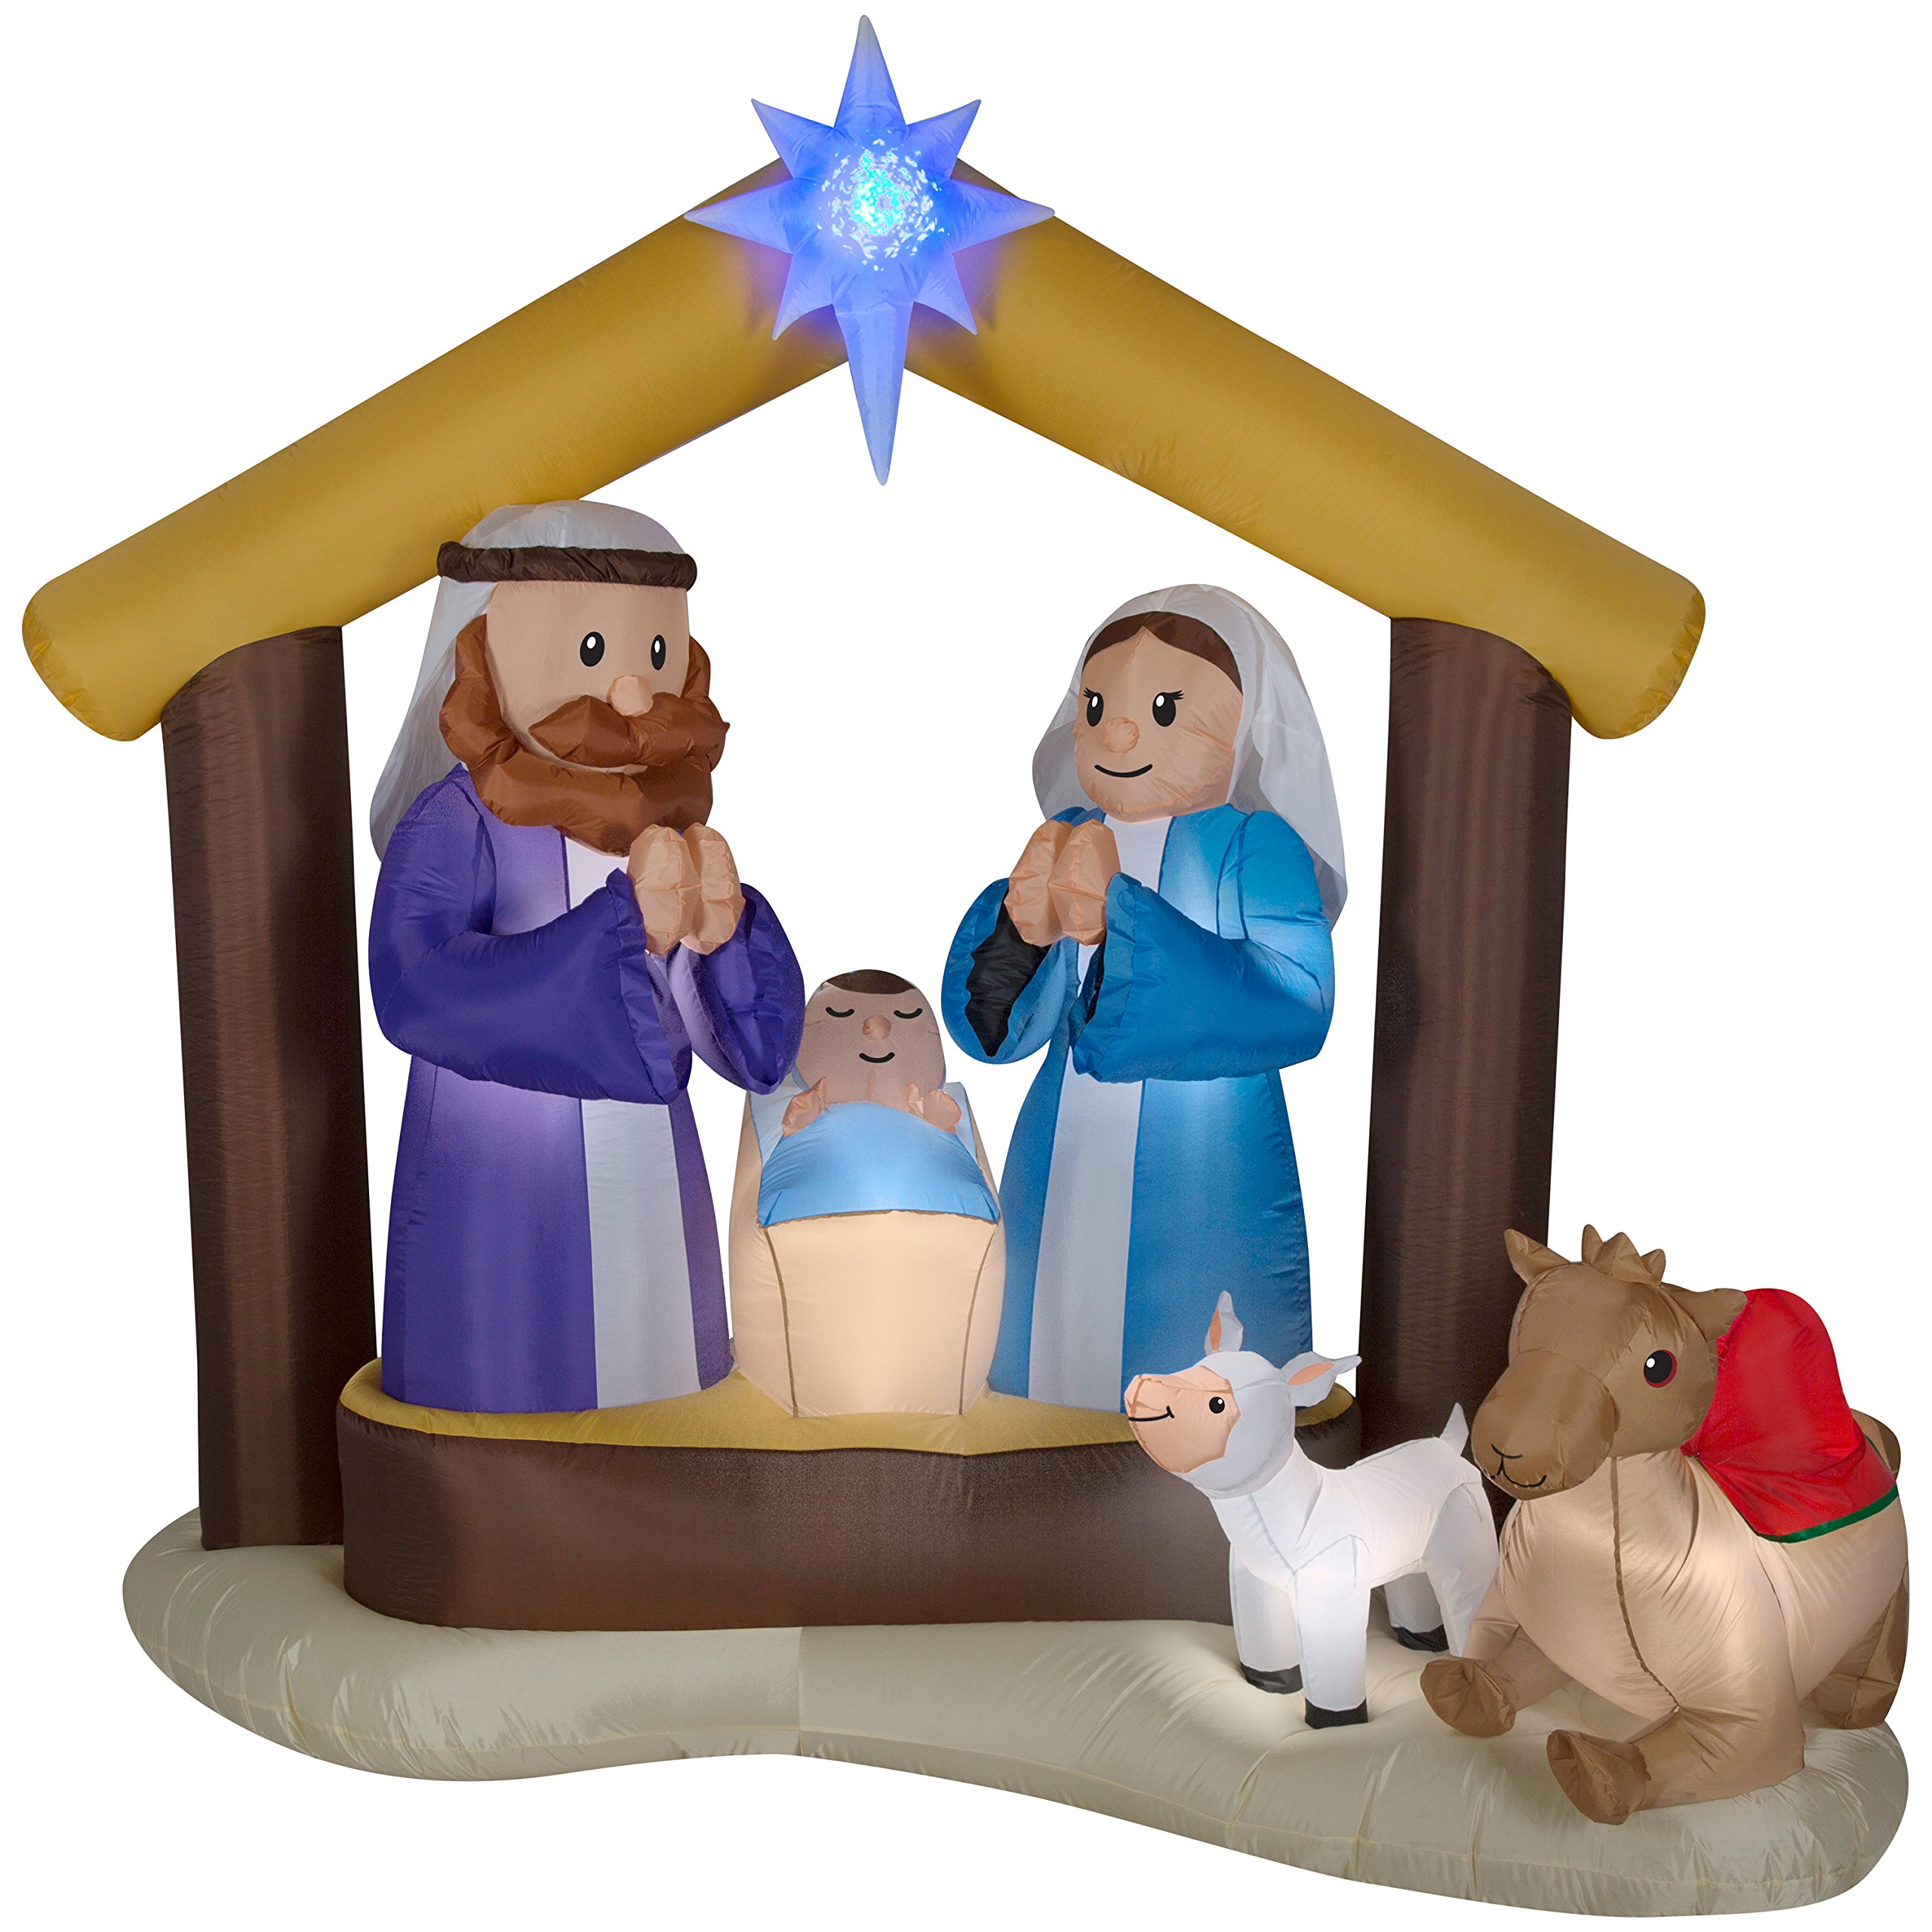 LightShow Airblown Inflatable Kaleidoscope Nativity Scene Outdoor Decoration by Gemmy (Image #1)